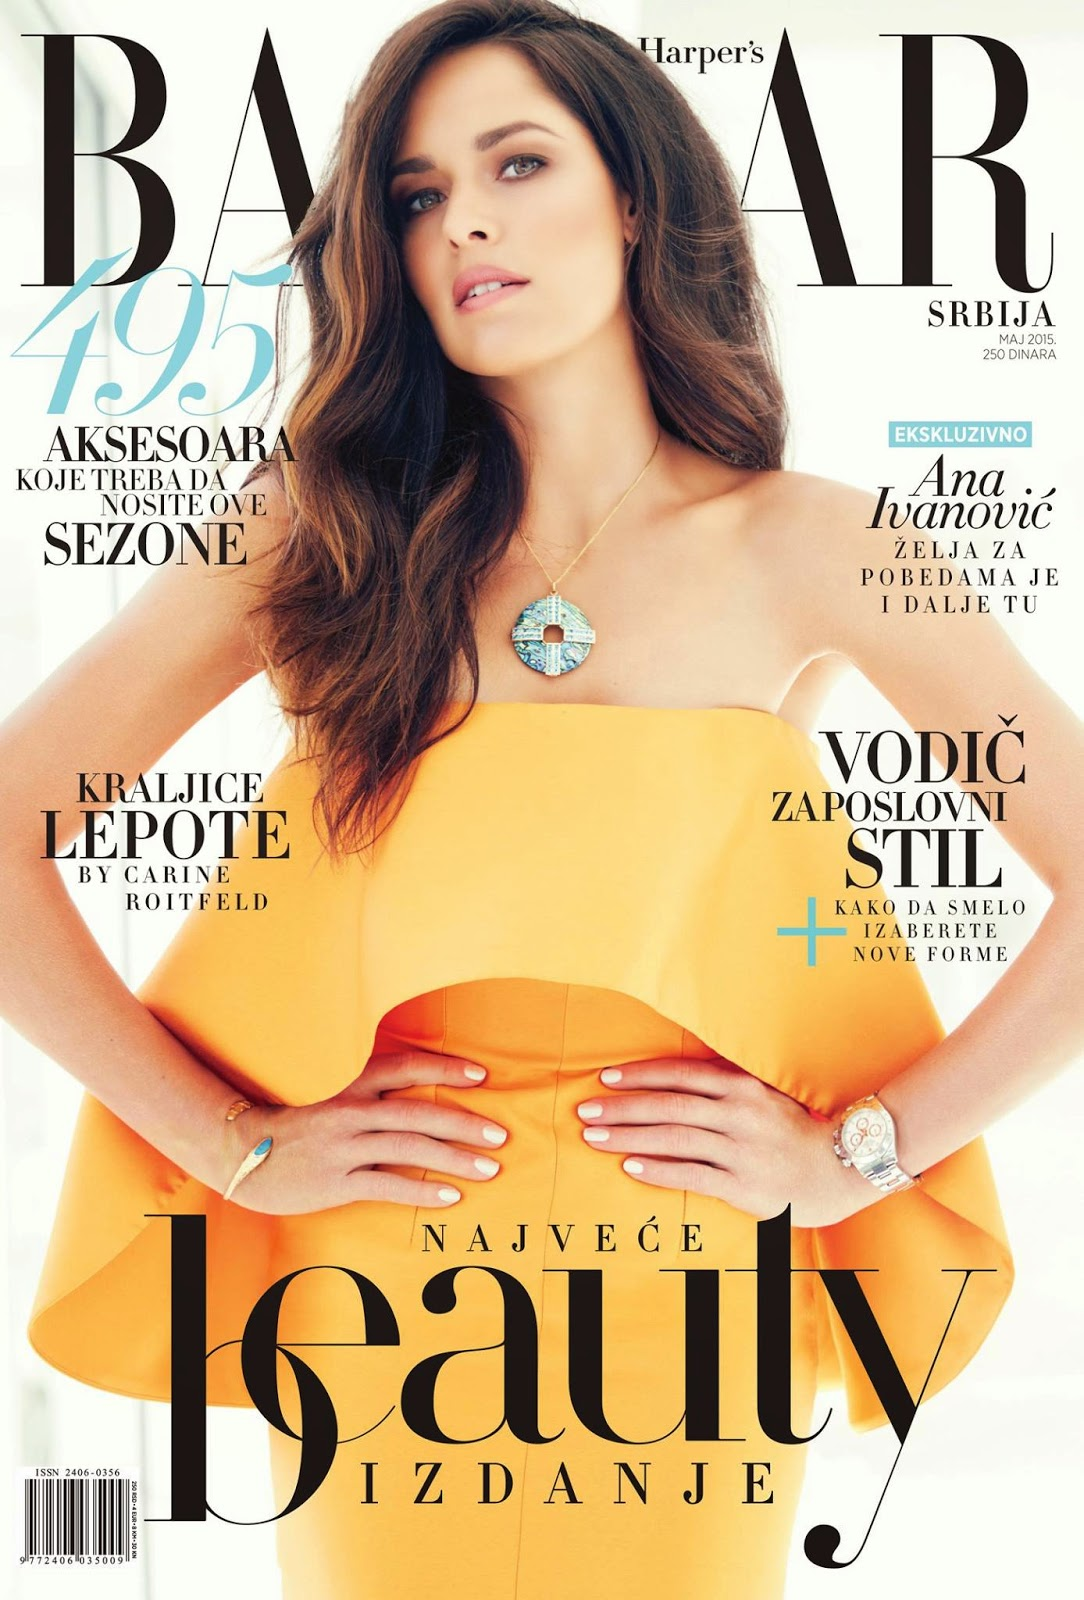 Tennis Player @ Ana Ivanovic by John Russo for Harper's Bazaar Serbia, May 2015